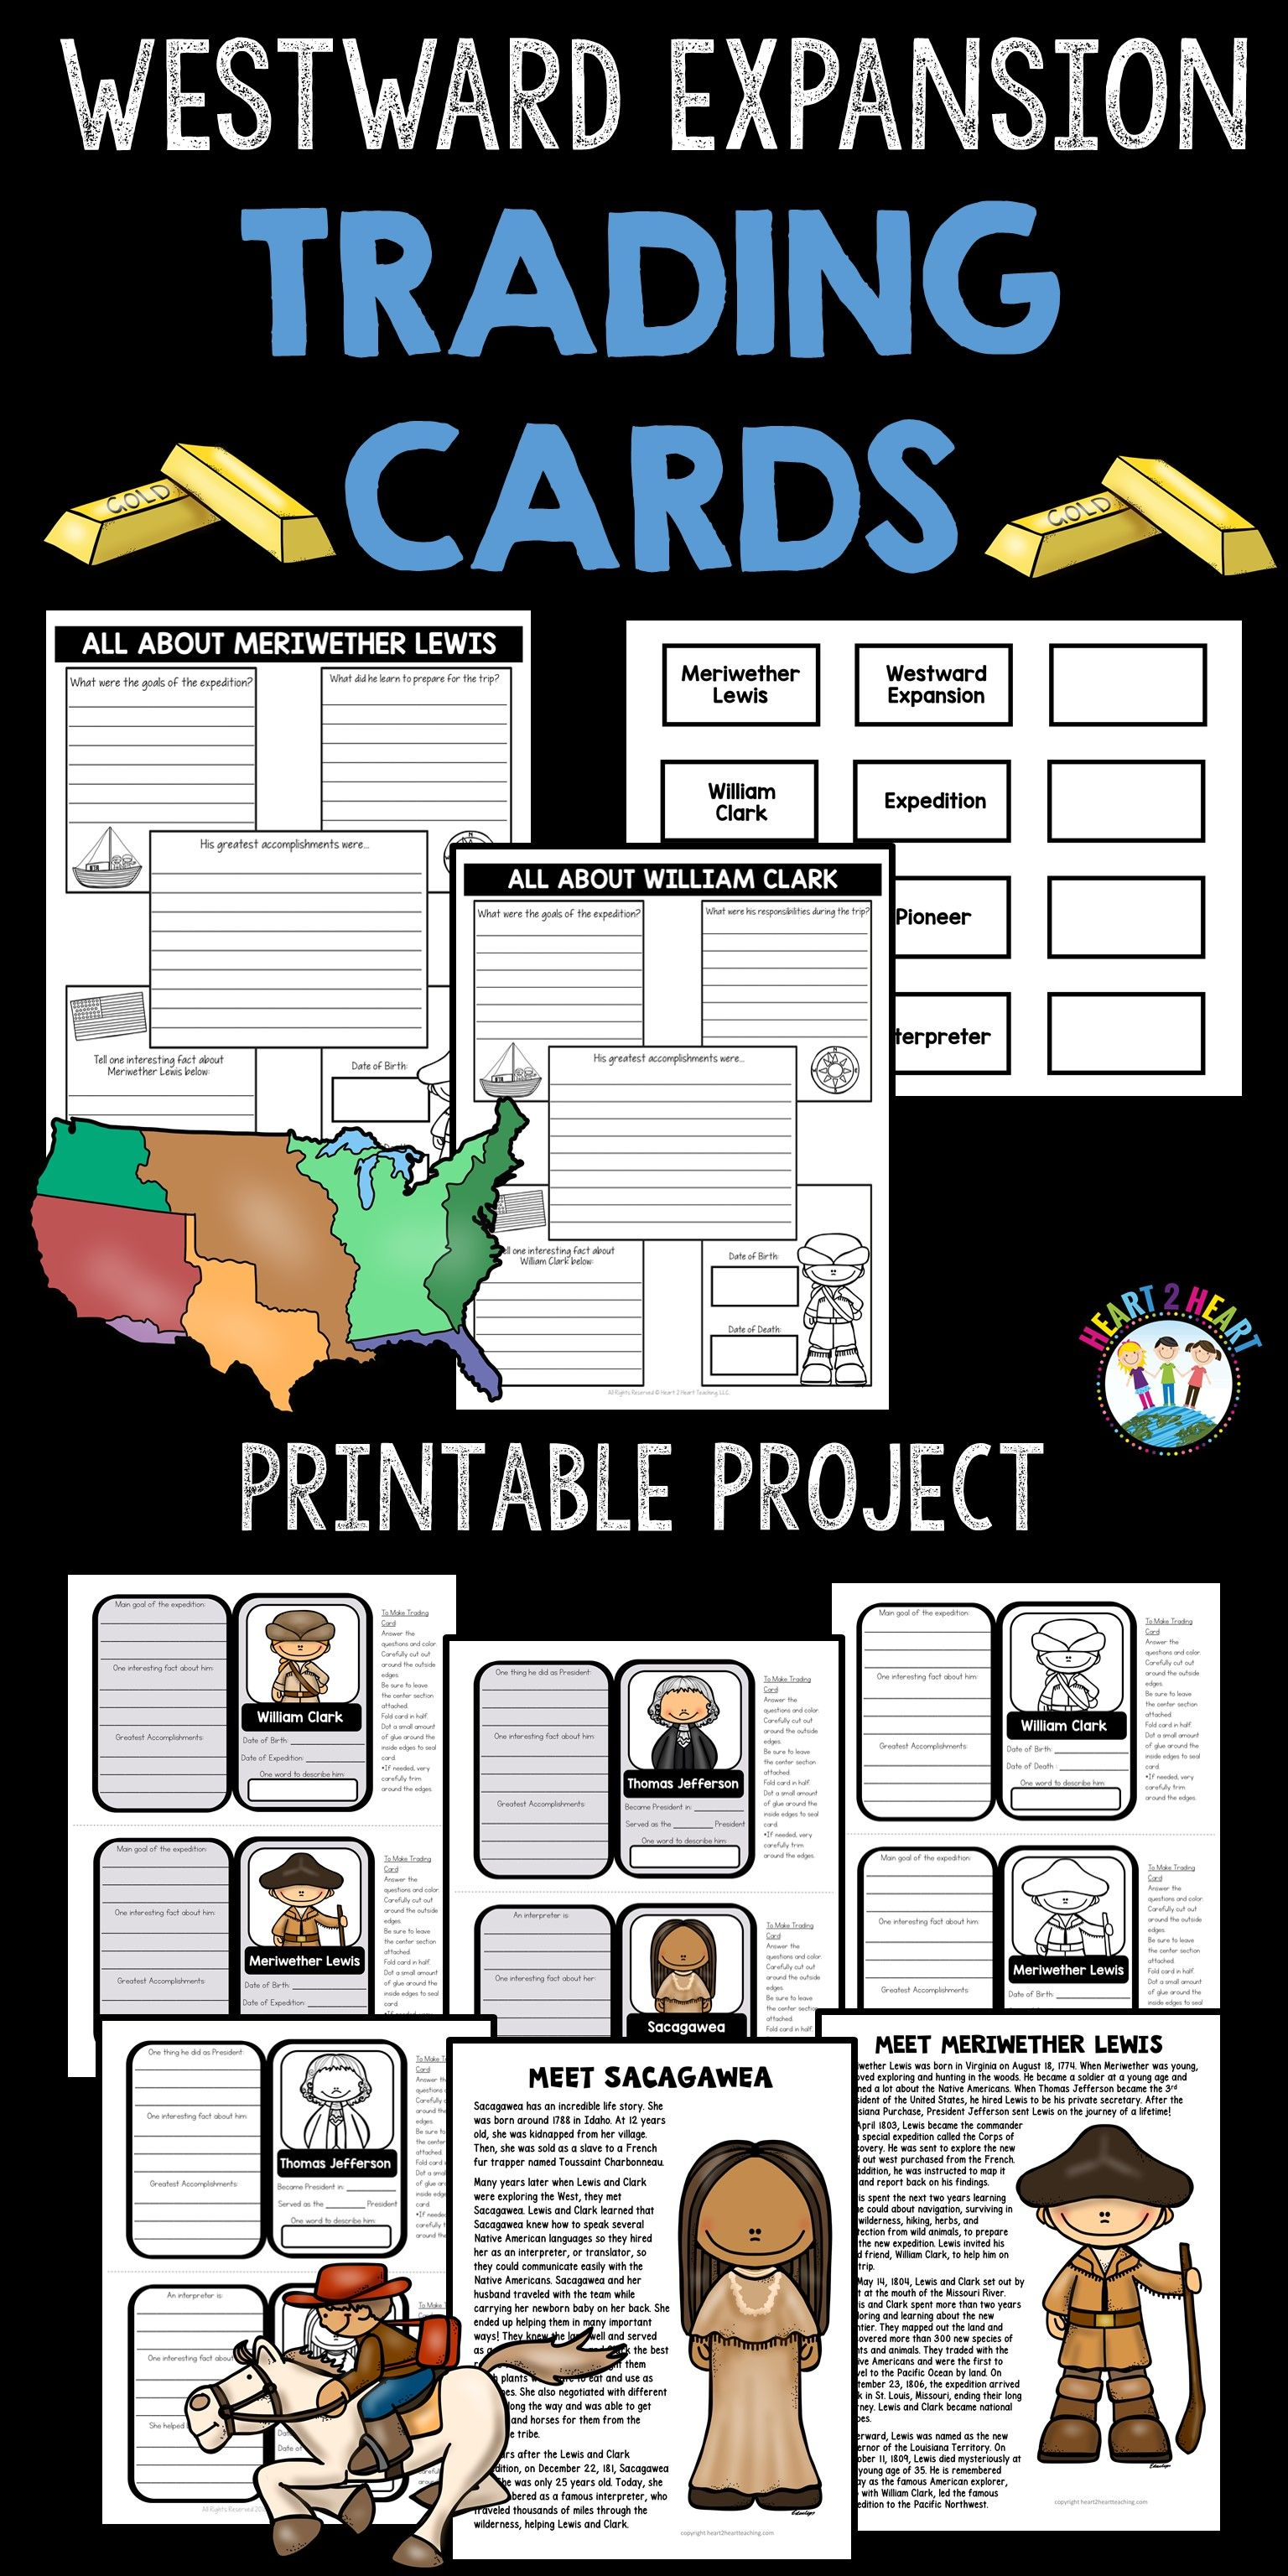 Westward Expansion Project Create Your Own Trading Cards